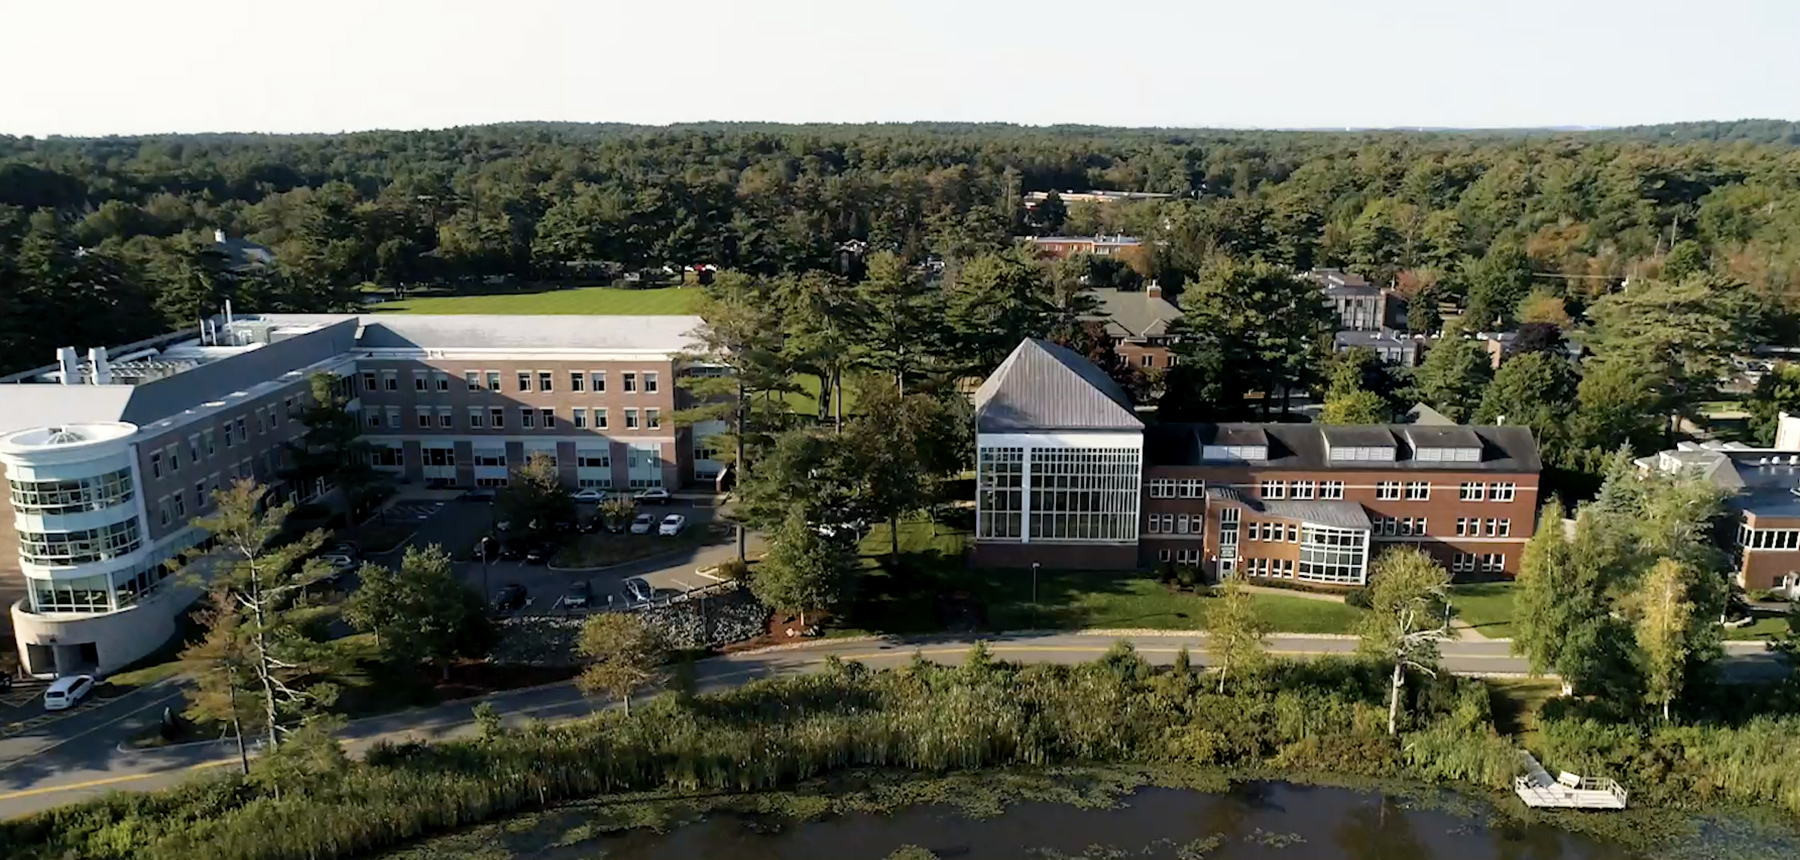 Gordon College, one of the top Christian colleges in America